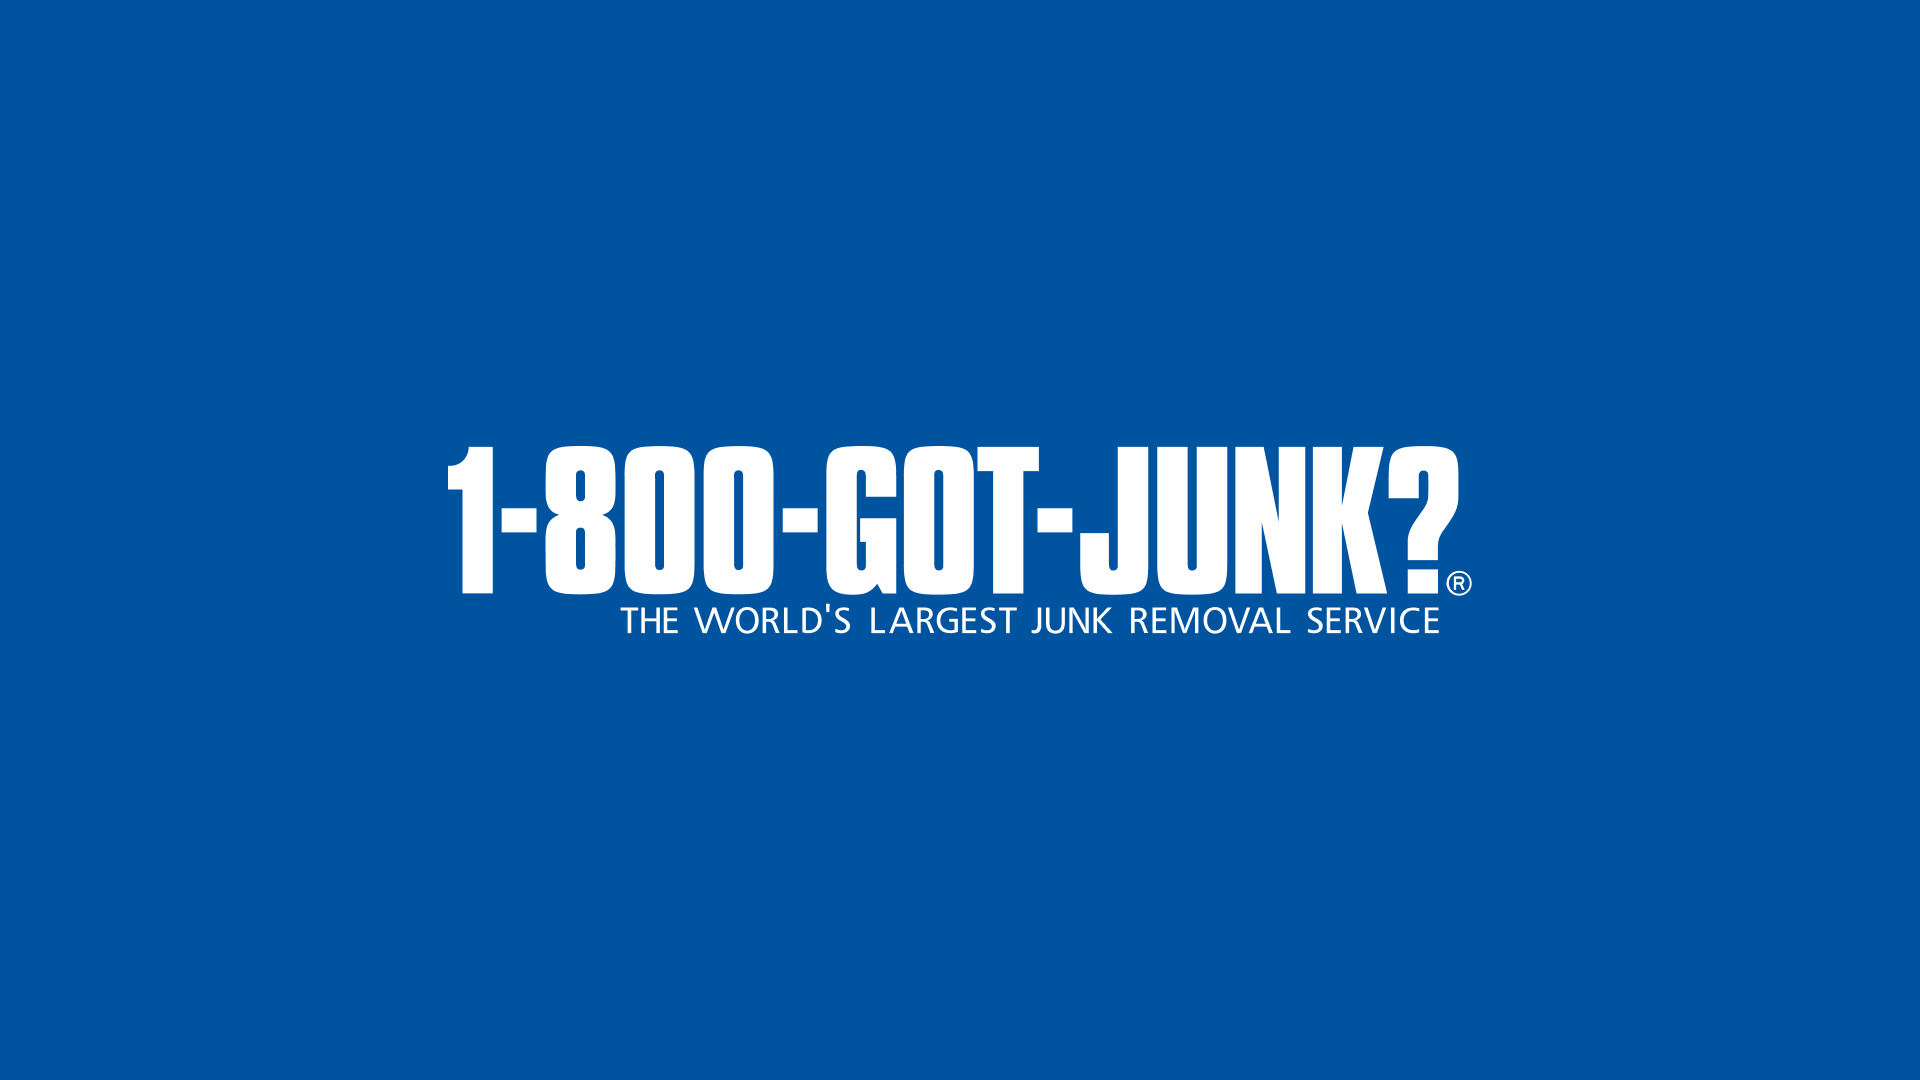 1-800-GOT-JUNK? Increases bookings and closes the attribution loop with Invoca